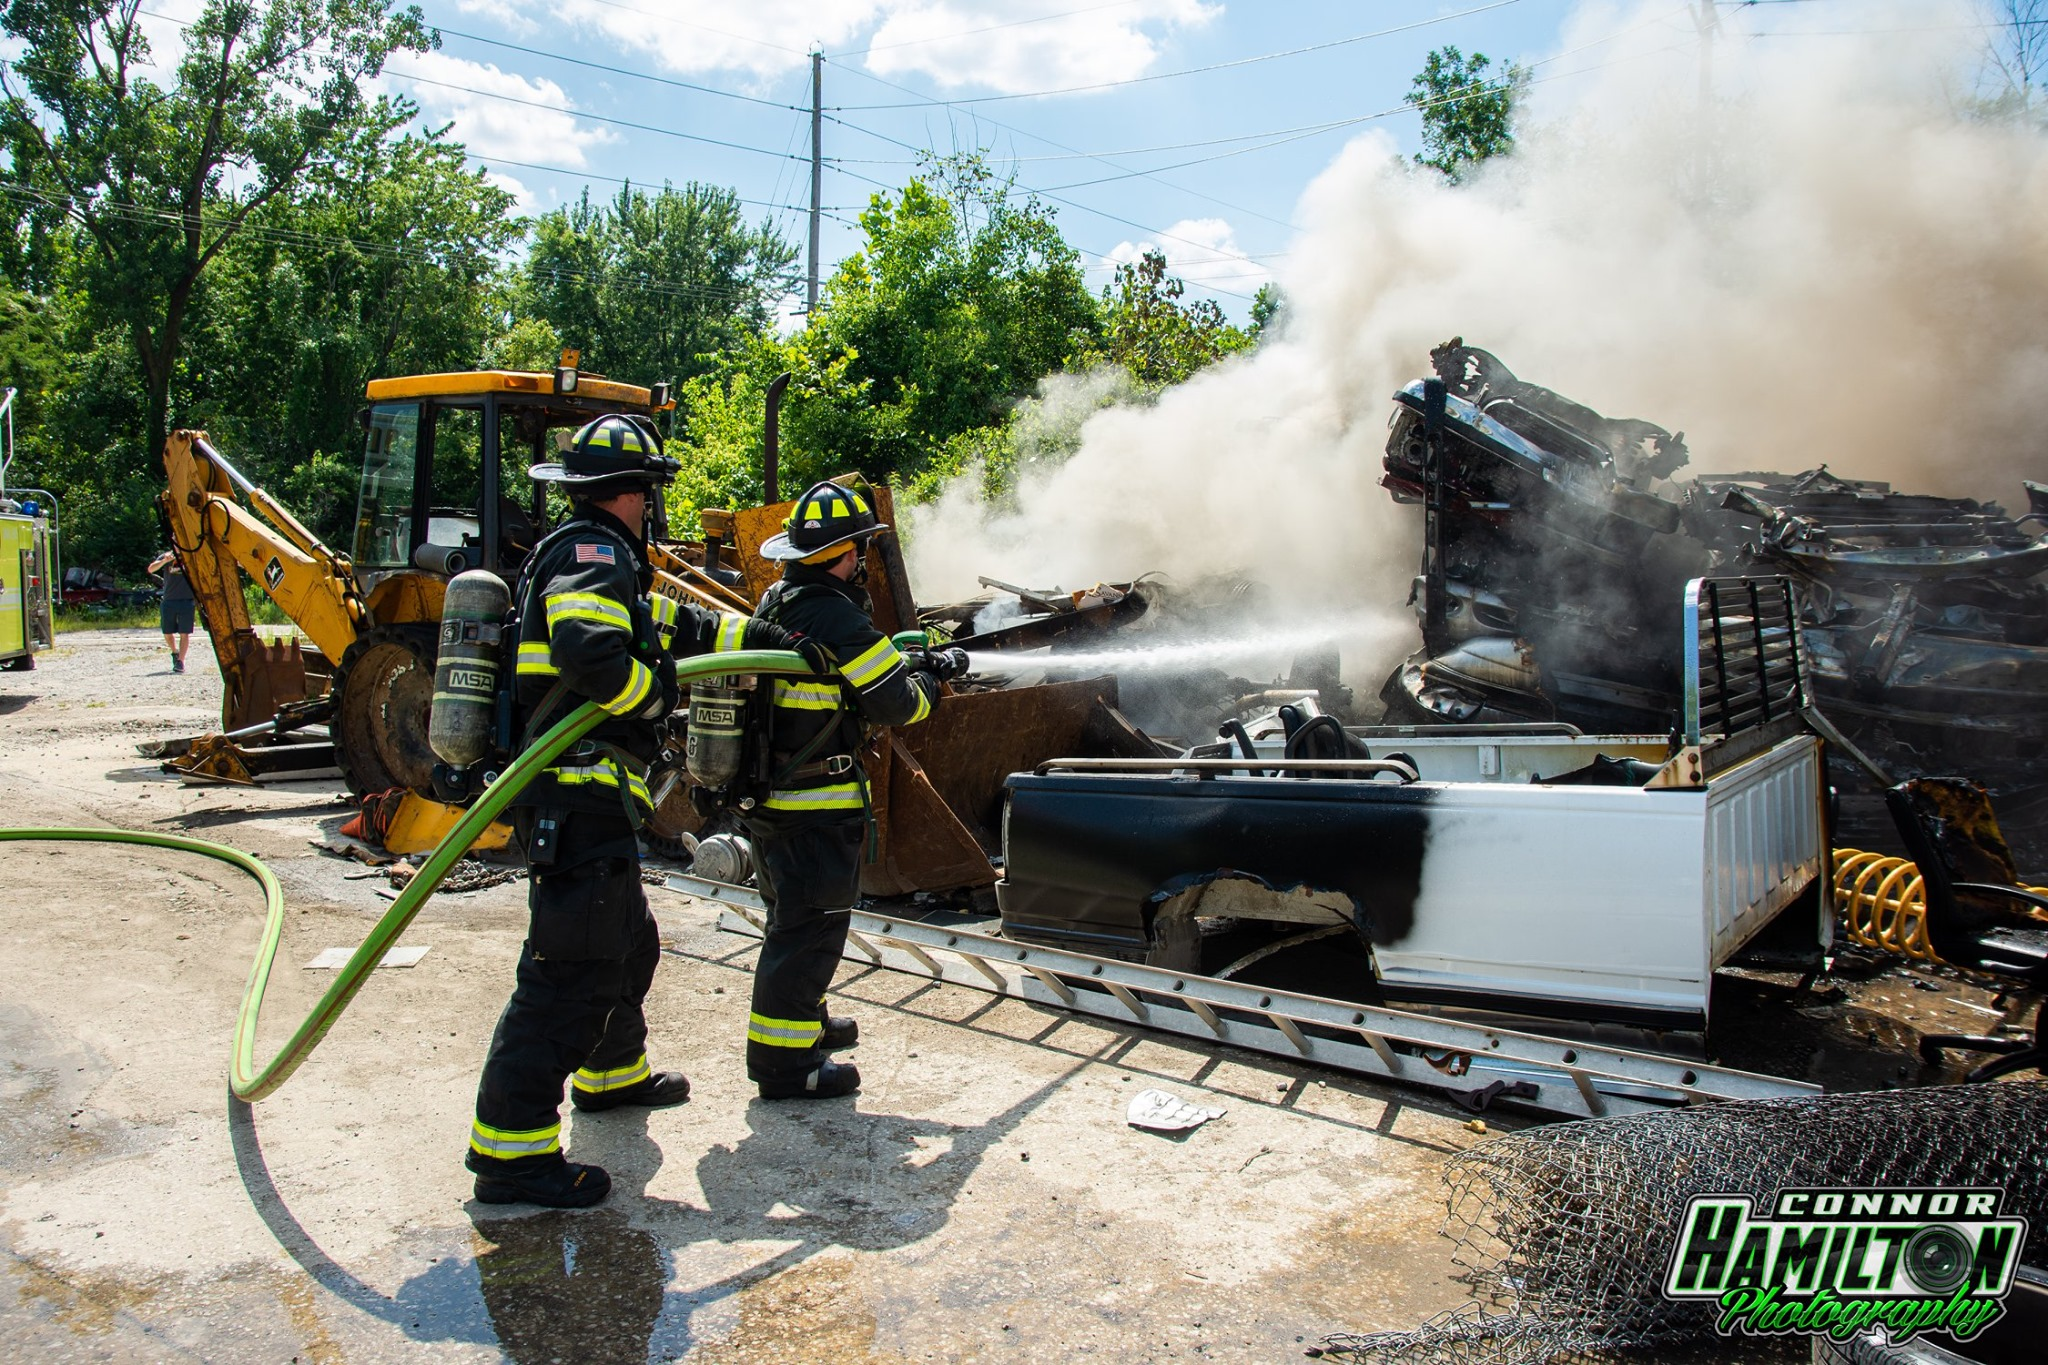 On 07/27/2019, East Side Fire responded for a fire in a junk yard with automatic mutual aid from Swansea Fire Department. Belleville Fire Department and Northwest Fire Department also responded mutual aid.